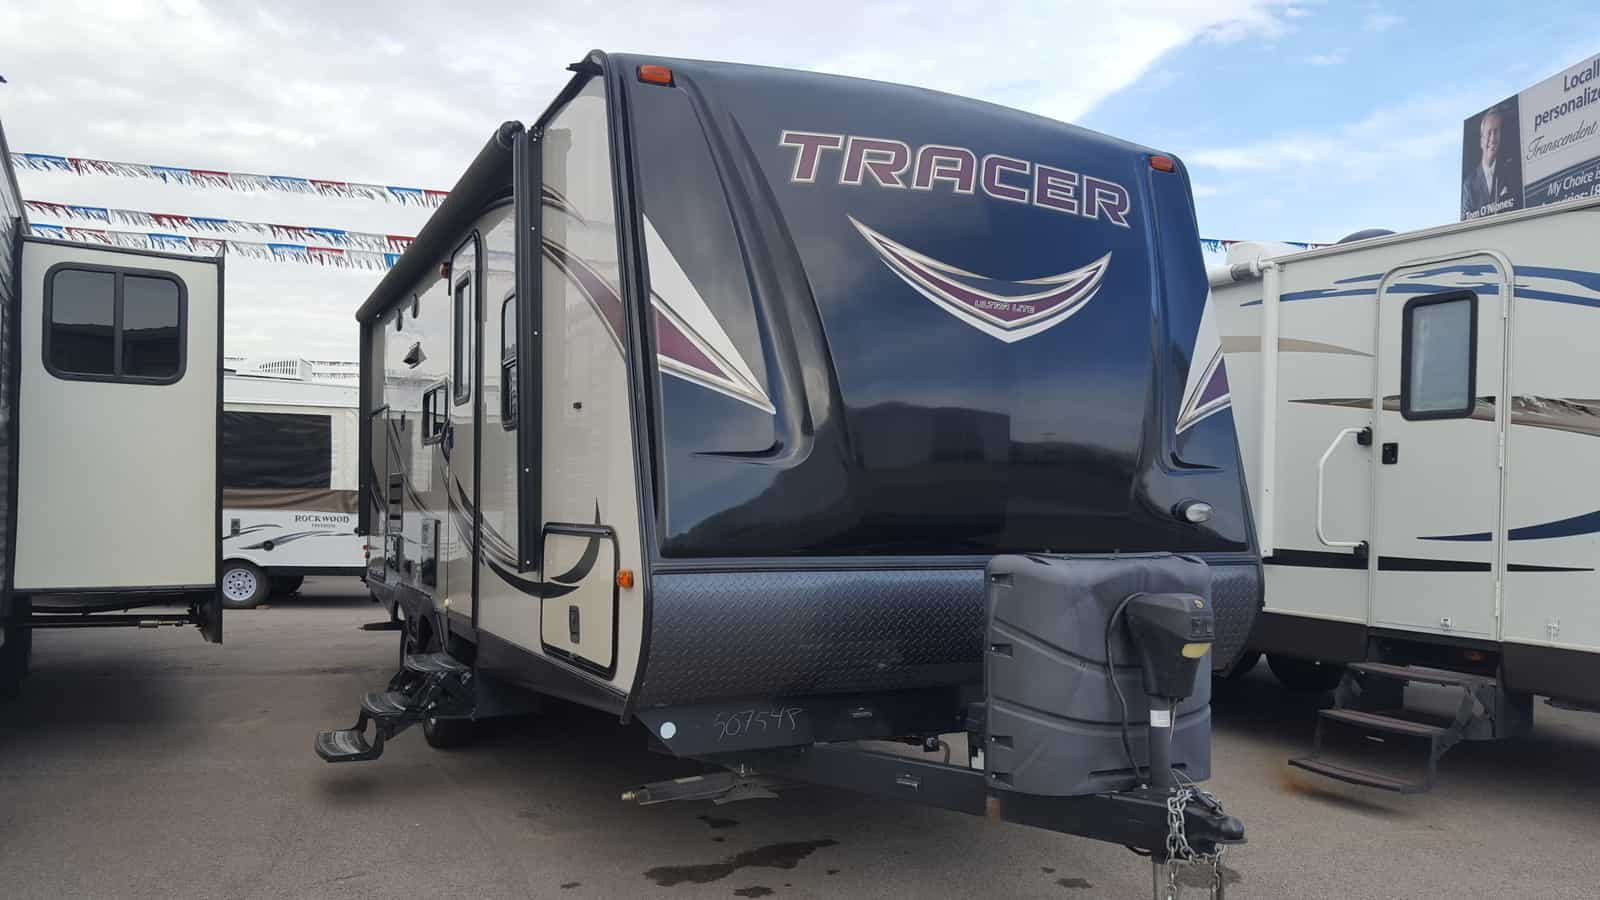 USED 2015 Prime Time TRACER 230FBS - American RV